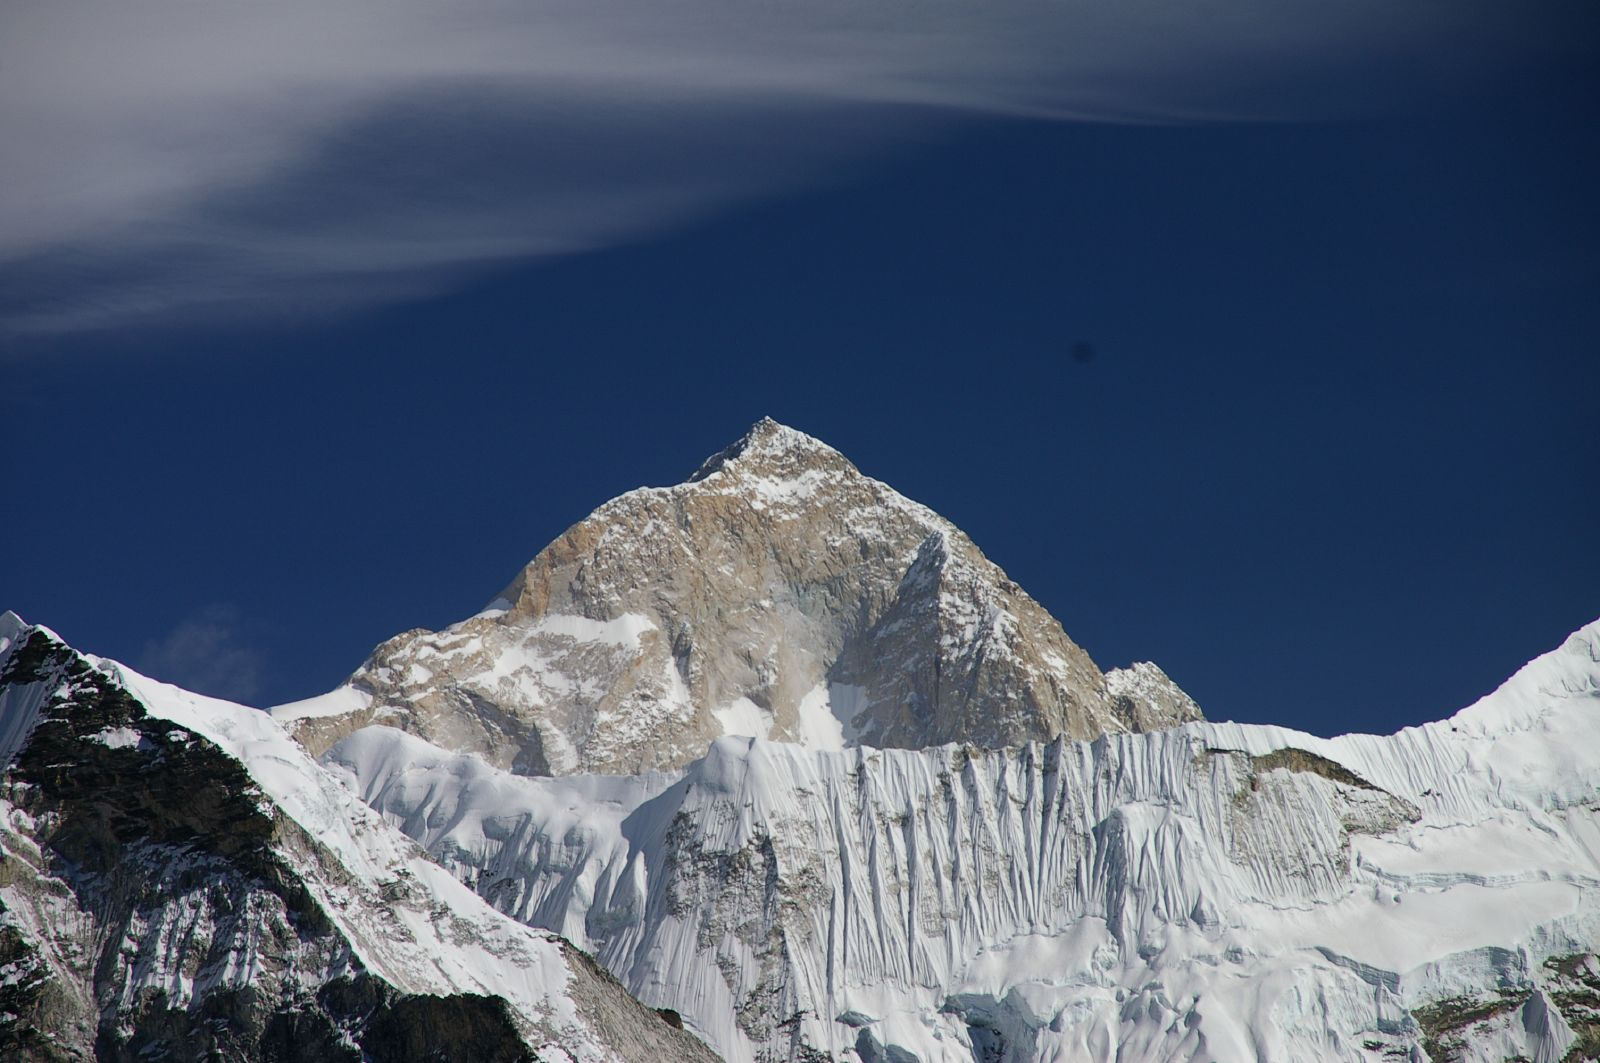 http://upload.wikimedia.org/wikipedia/commons/1/19/Makalu.jpg